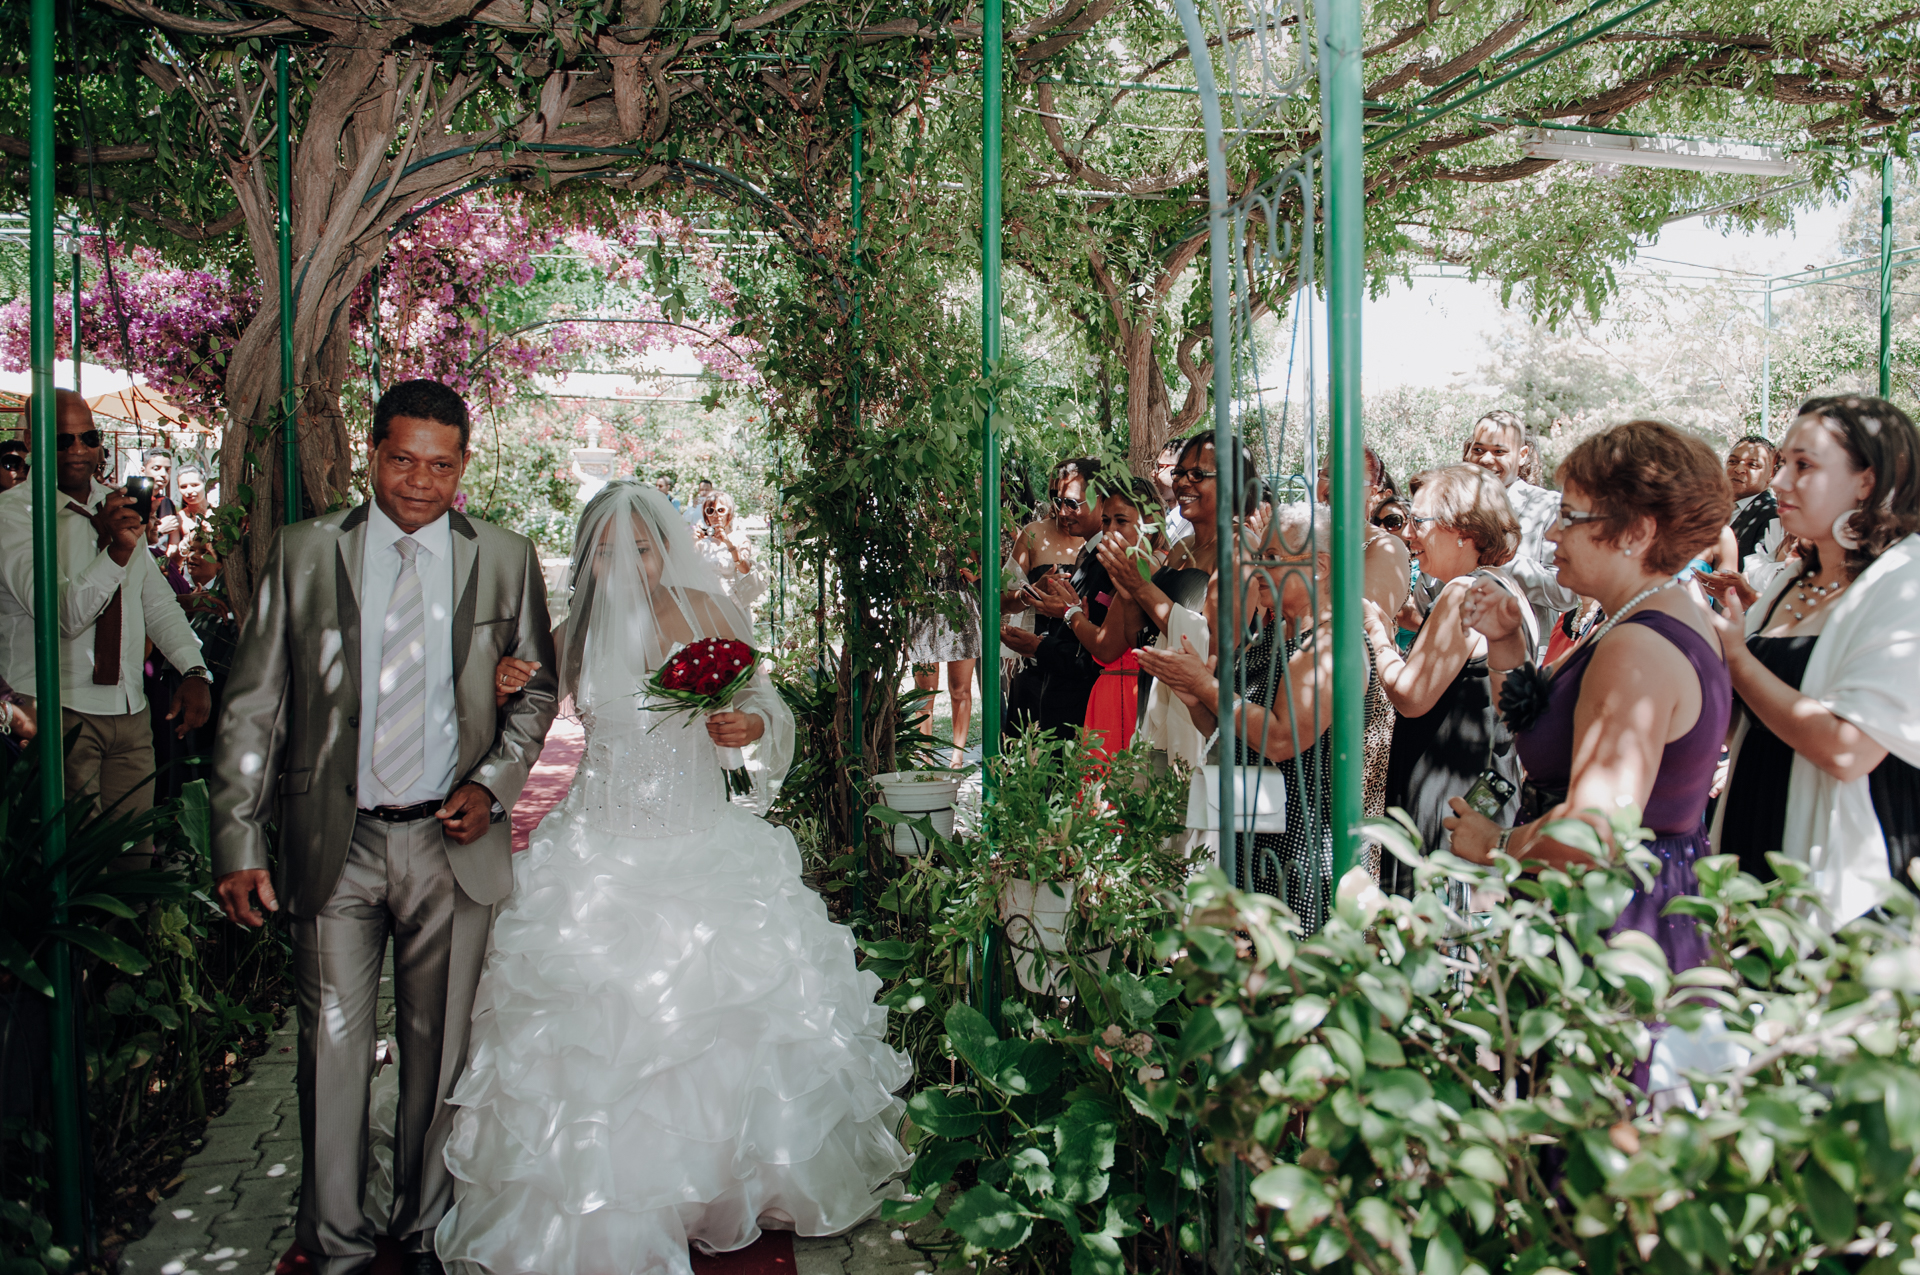 Portugal Wedding Ceremony Photo, Lisbon | the cascading floral pergolas adding a touch of whimsy and romance to the event